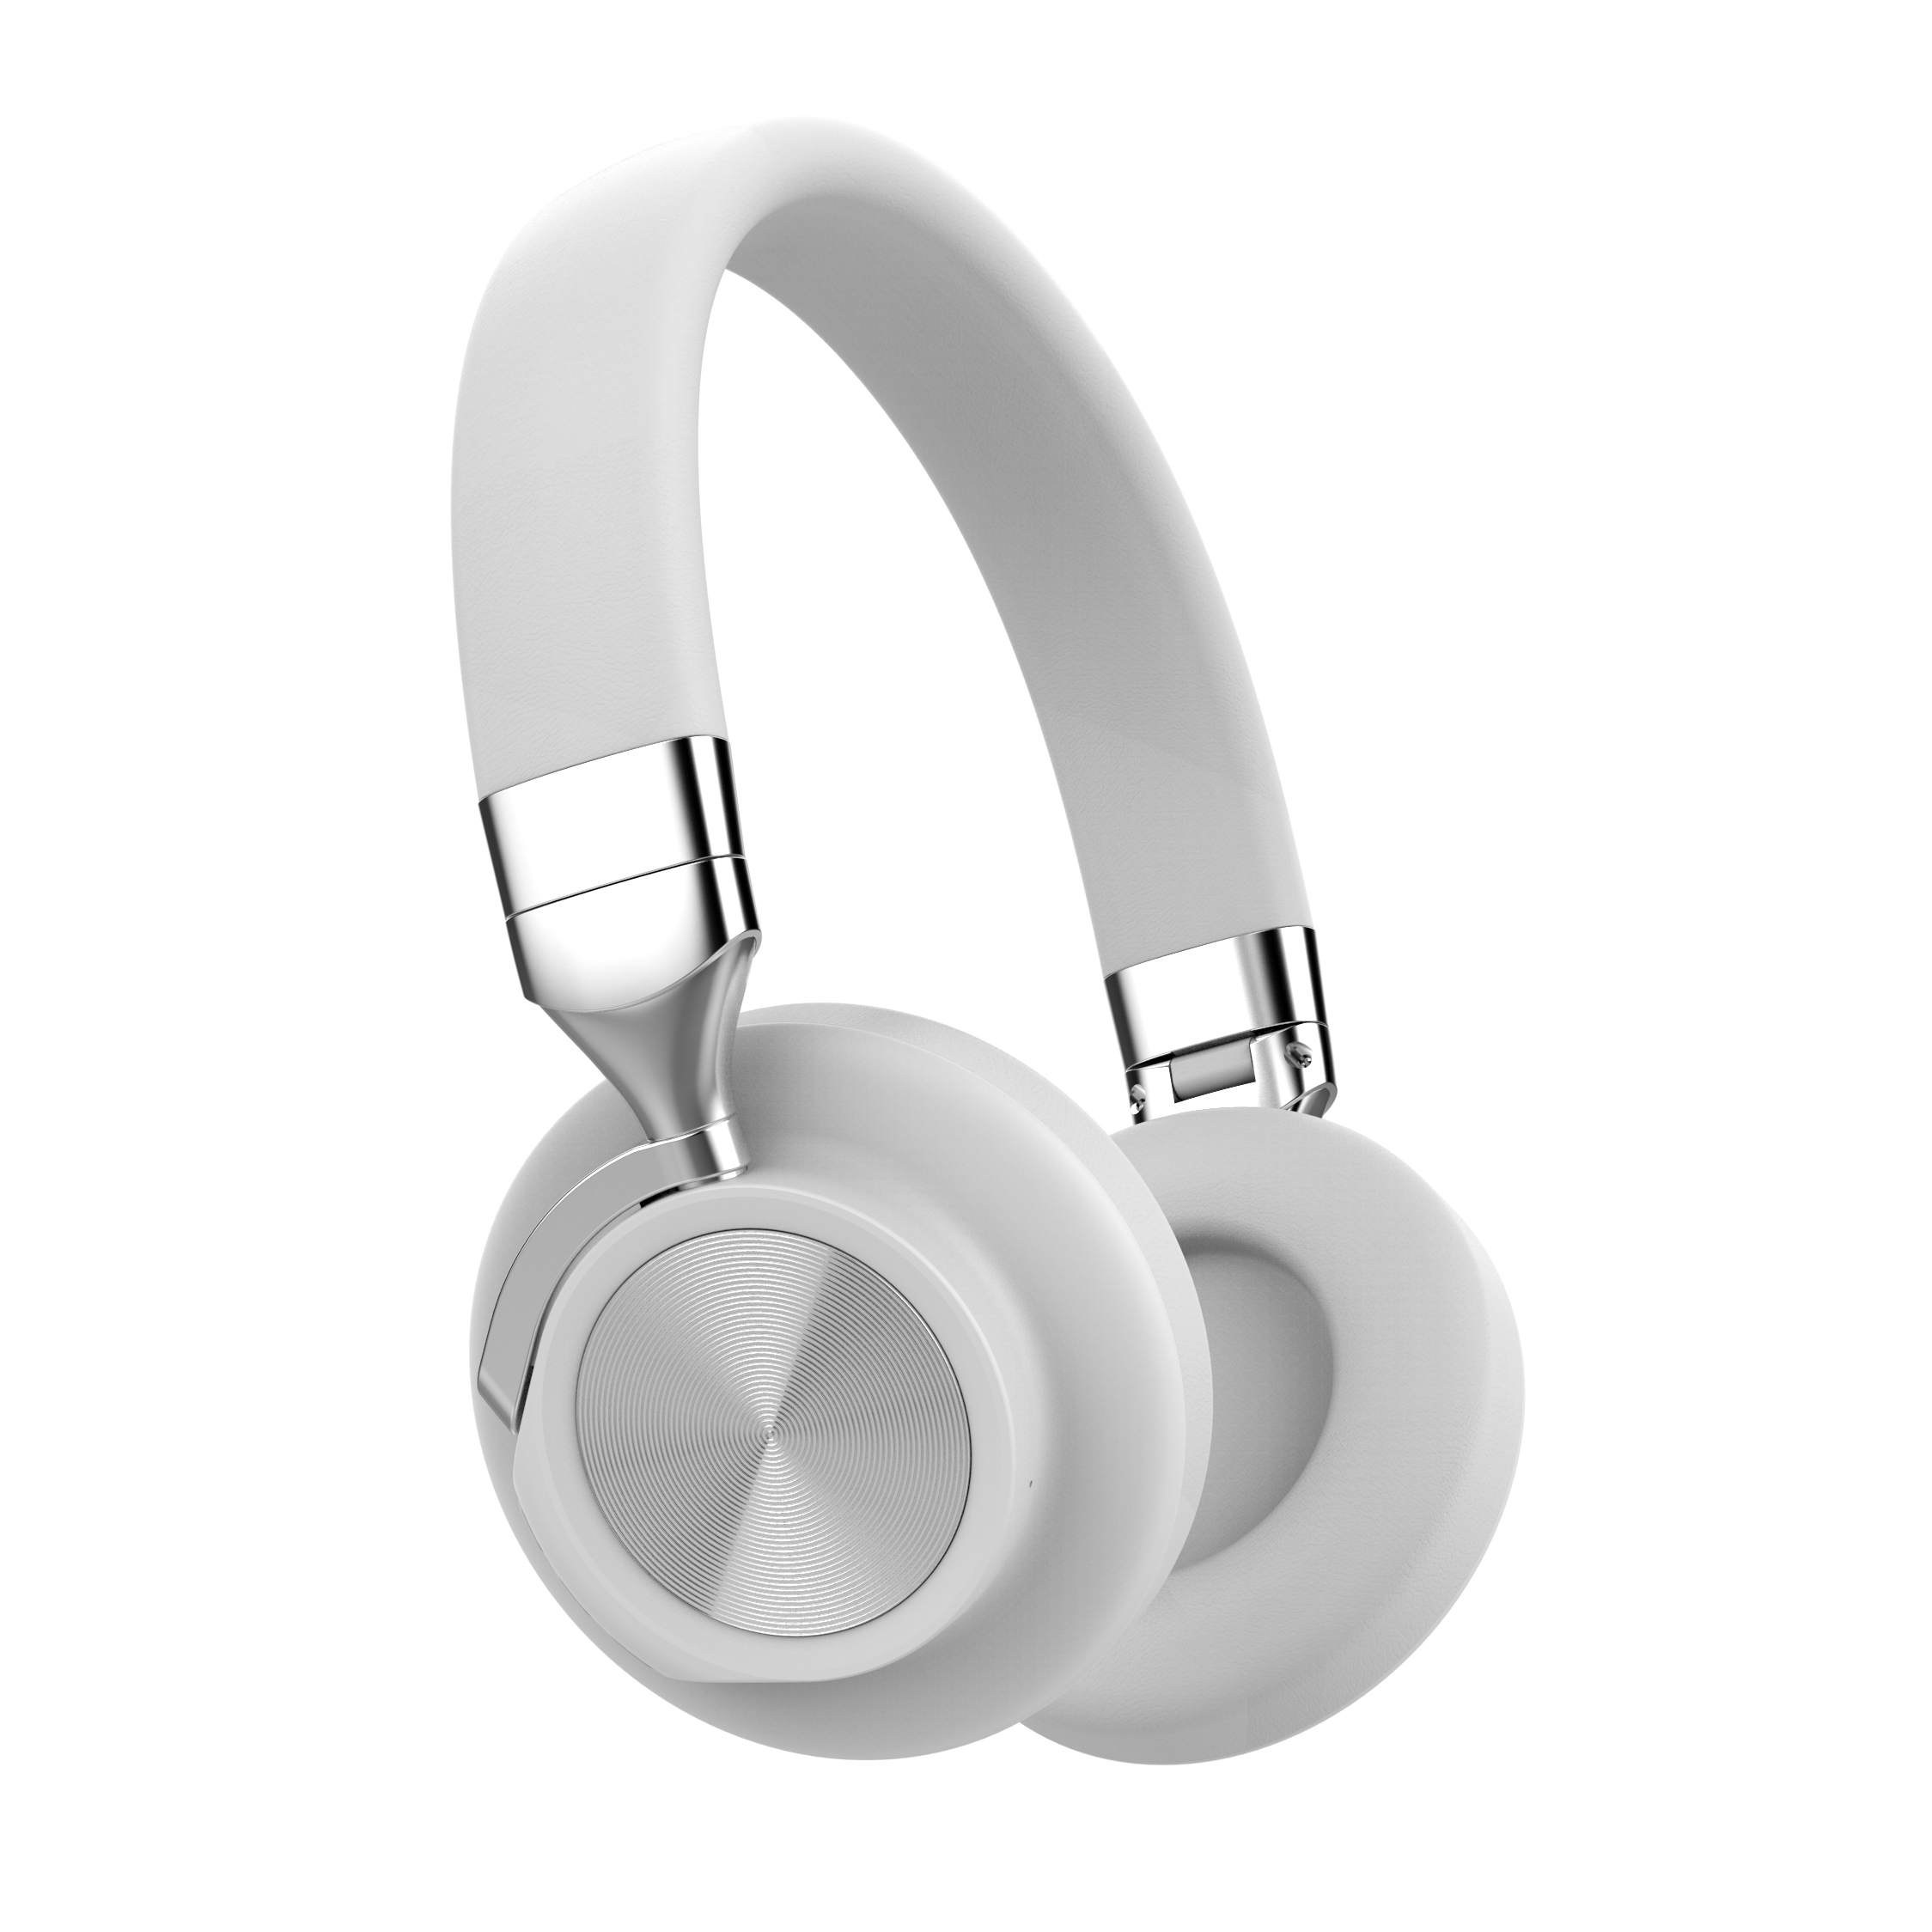 OEM-BL136 Bluetooth headphones